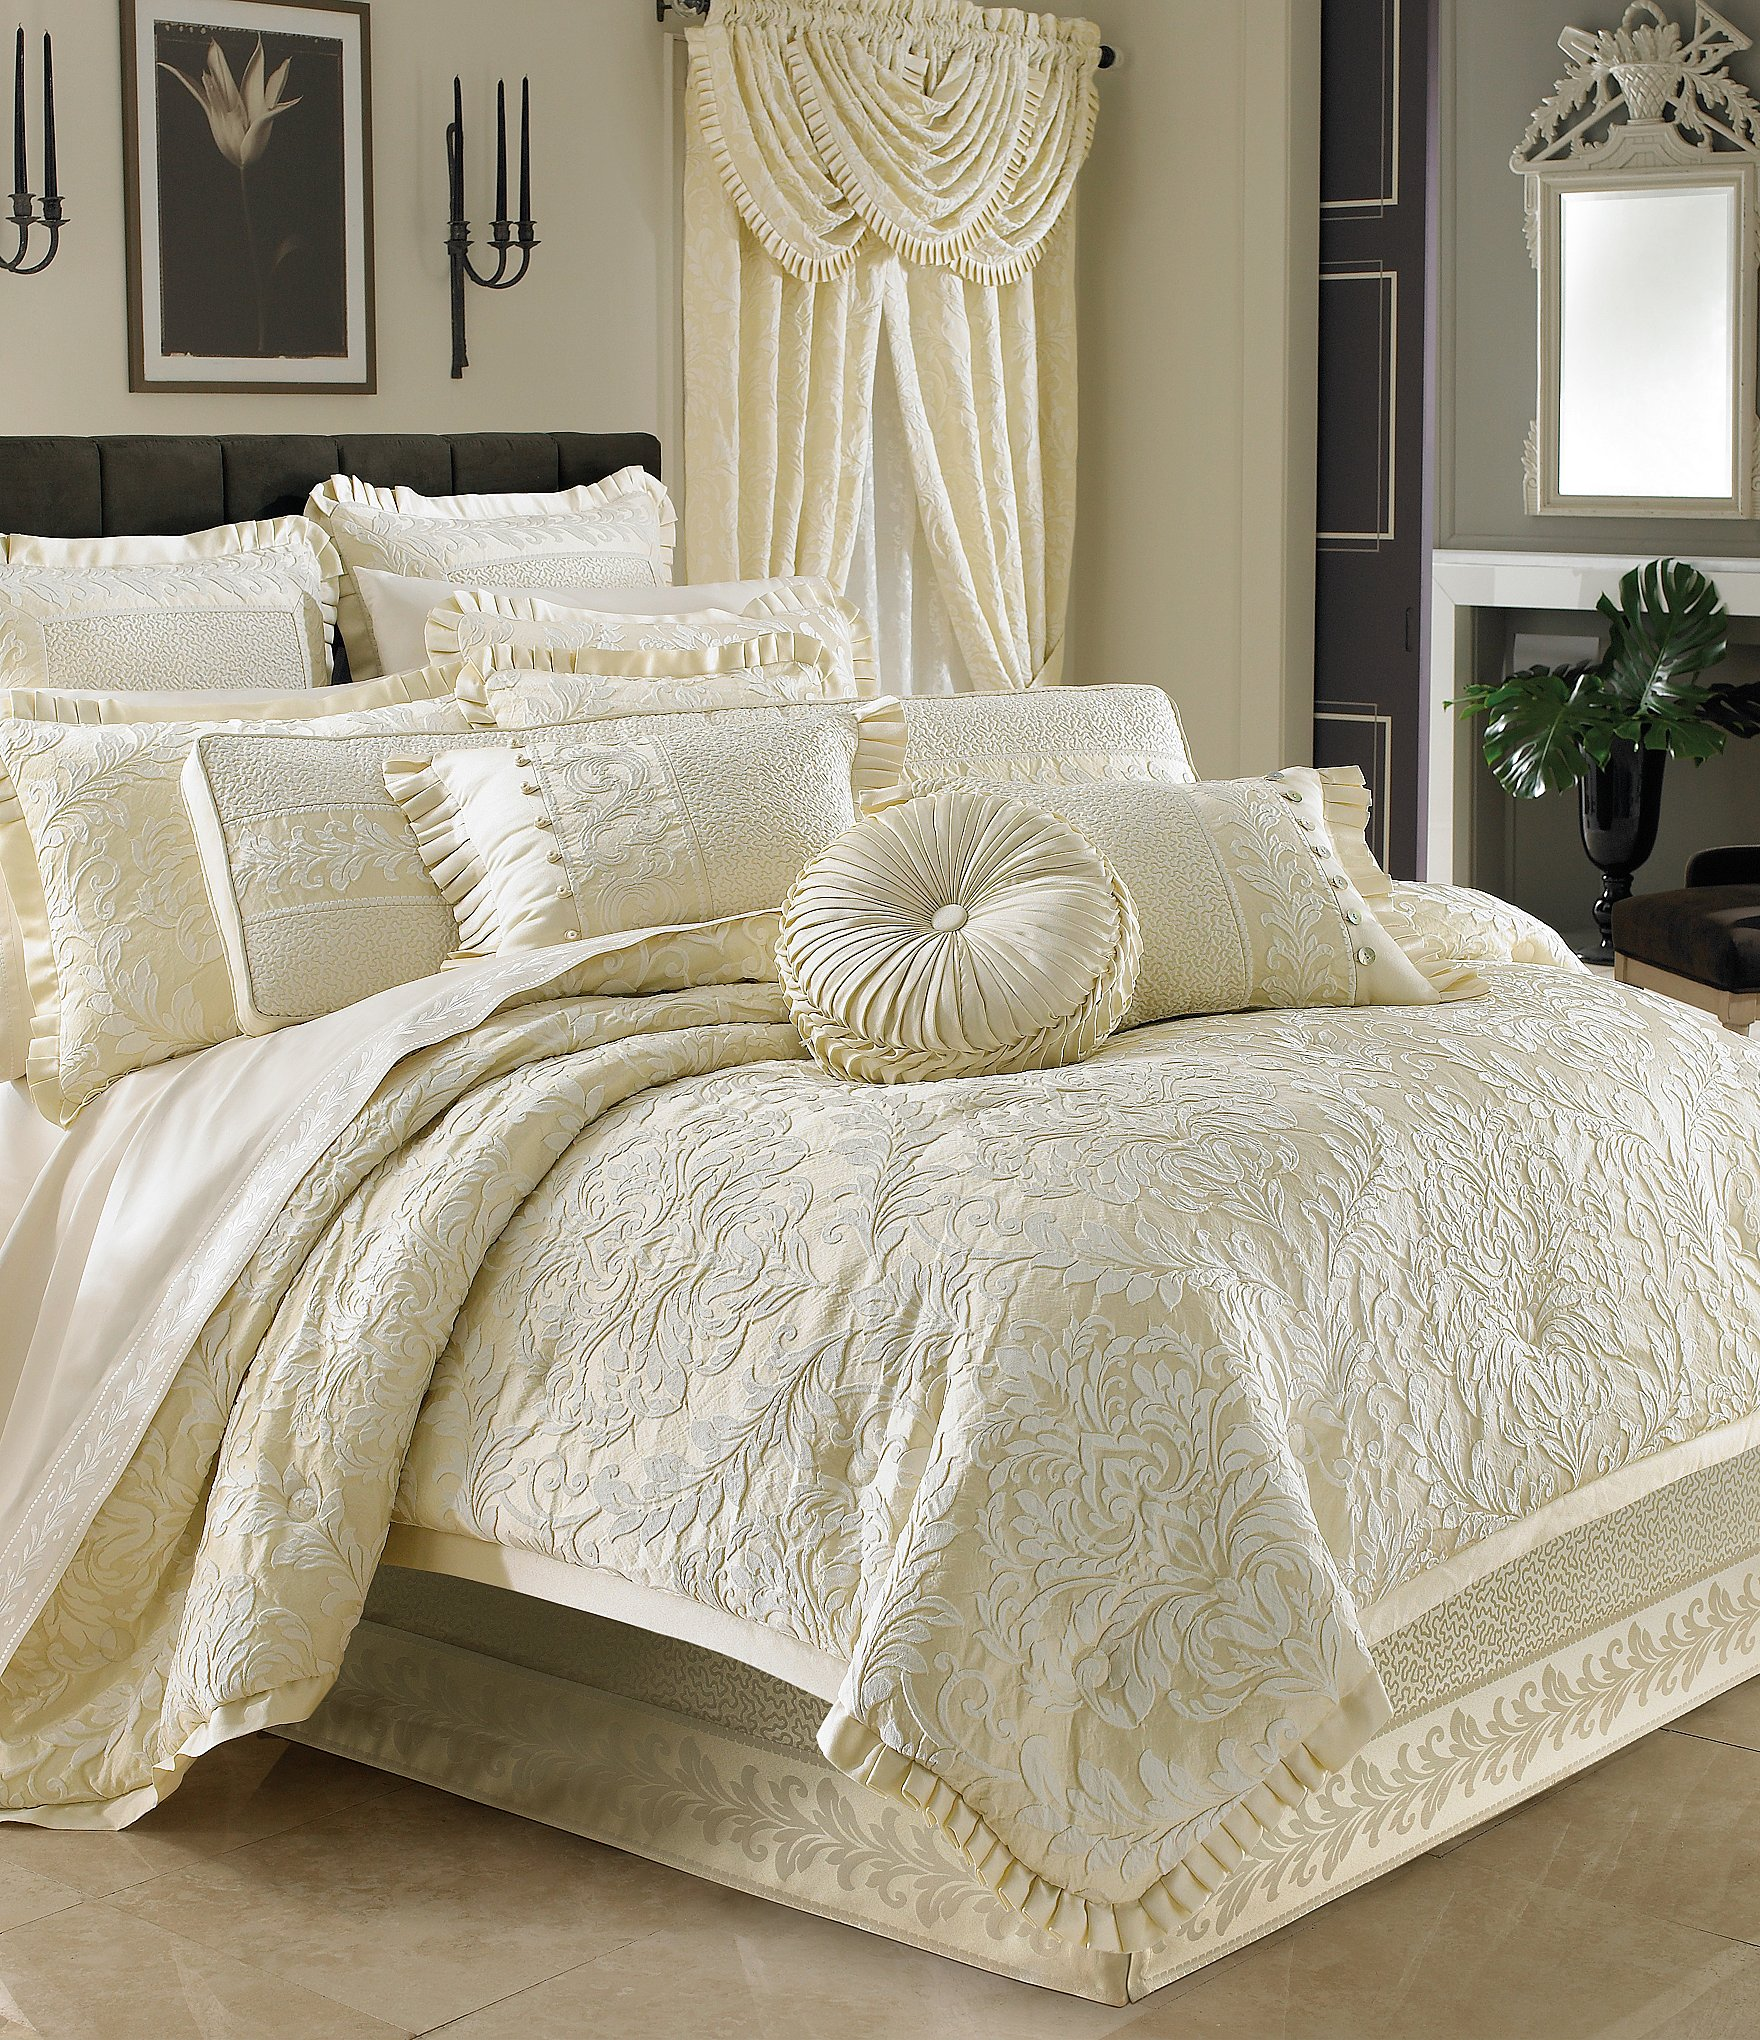 J Queen New York Marquis Damask Comforter Set Dillard S